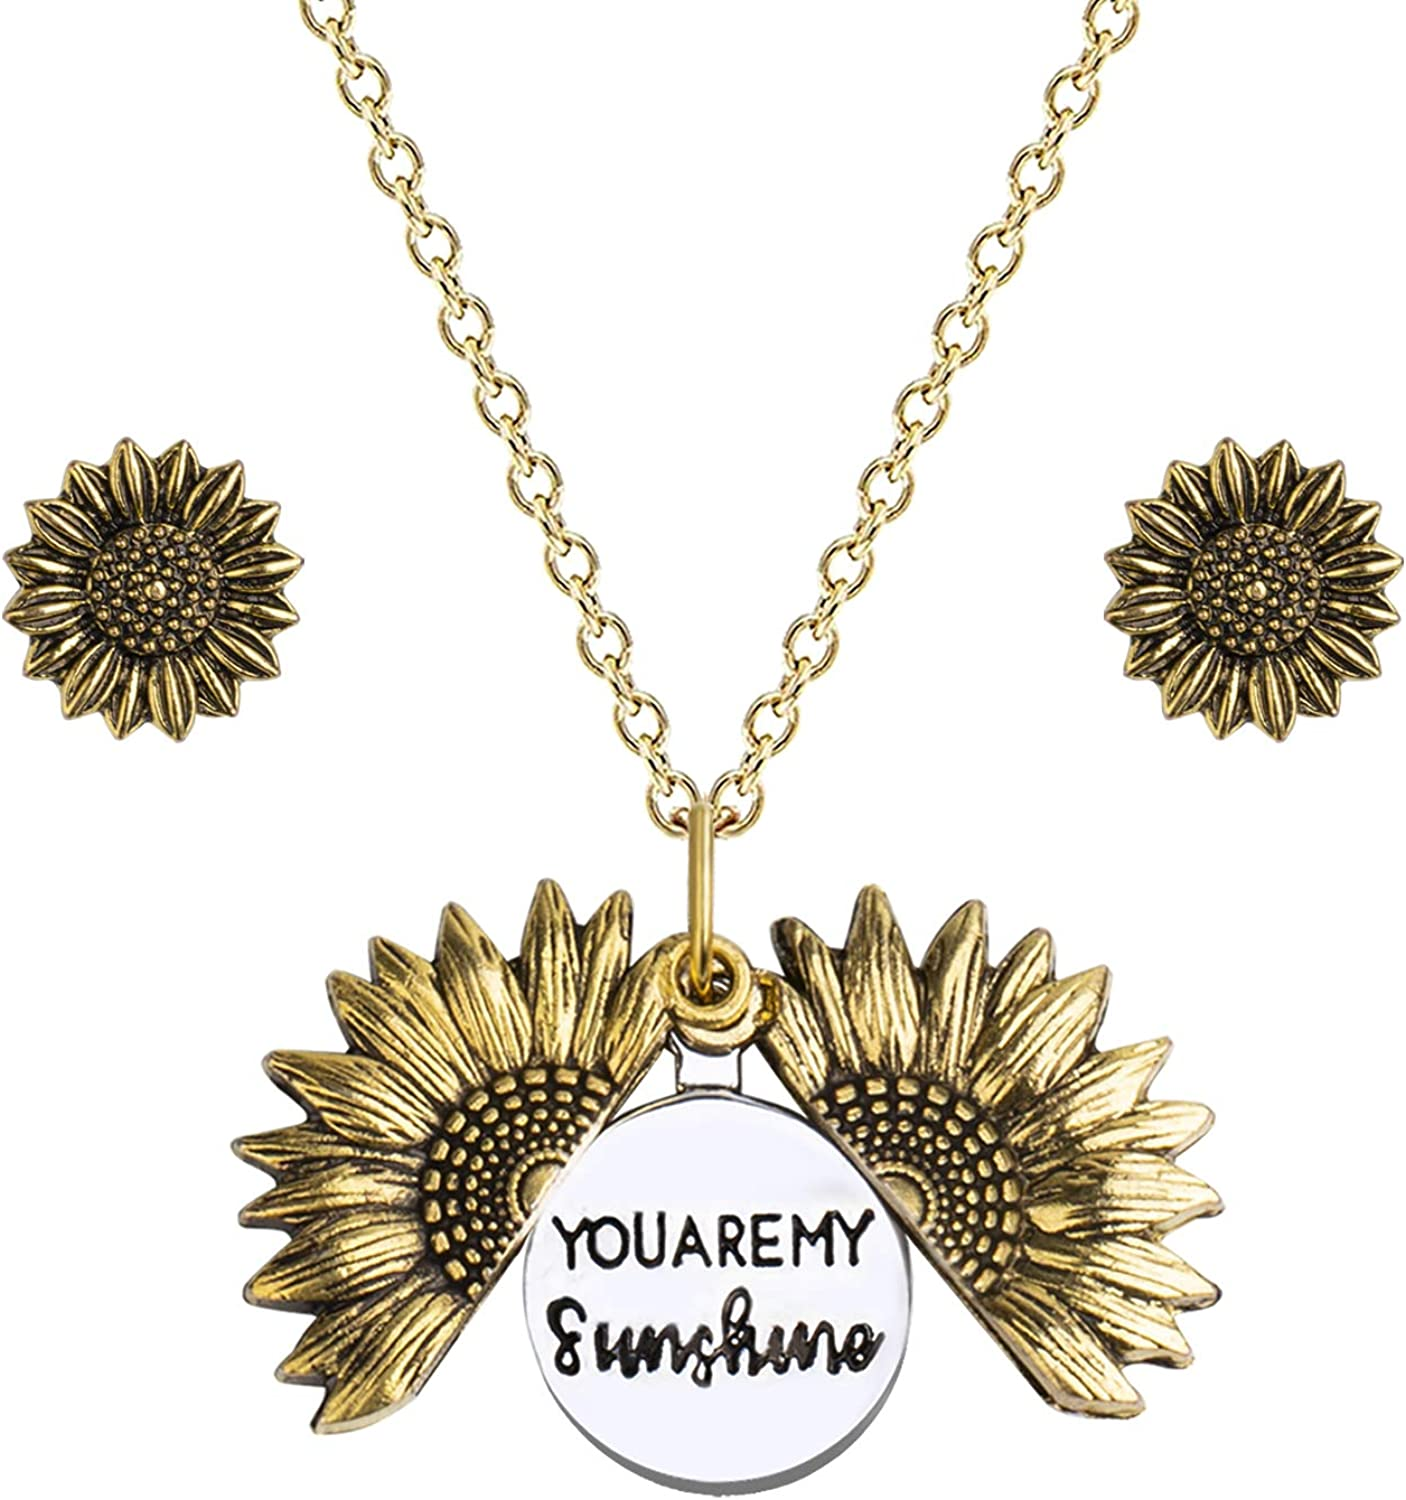 Sunflower Necklace and Earrings Set You Are My Sunshine Necklace Mother Daughter Necklace Jewelry for Women and Girls with Gift Box Engraved Pendant Locket Necklace